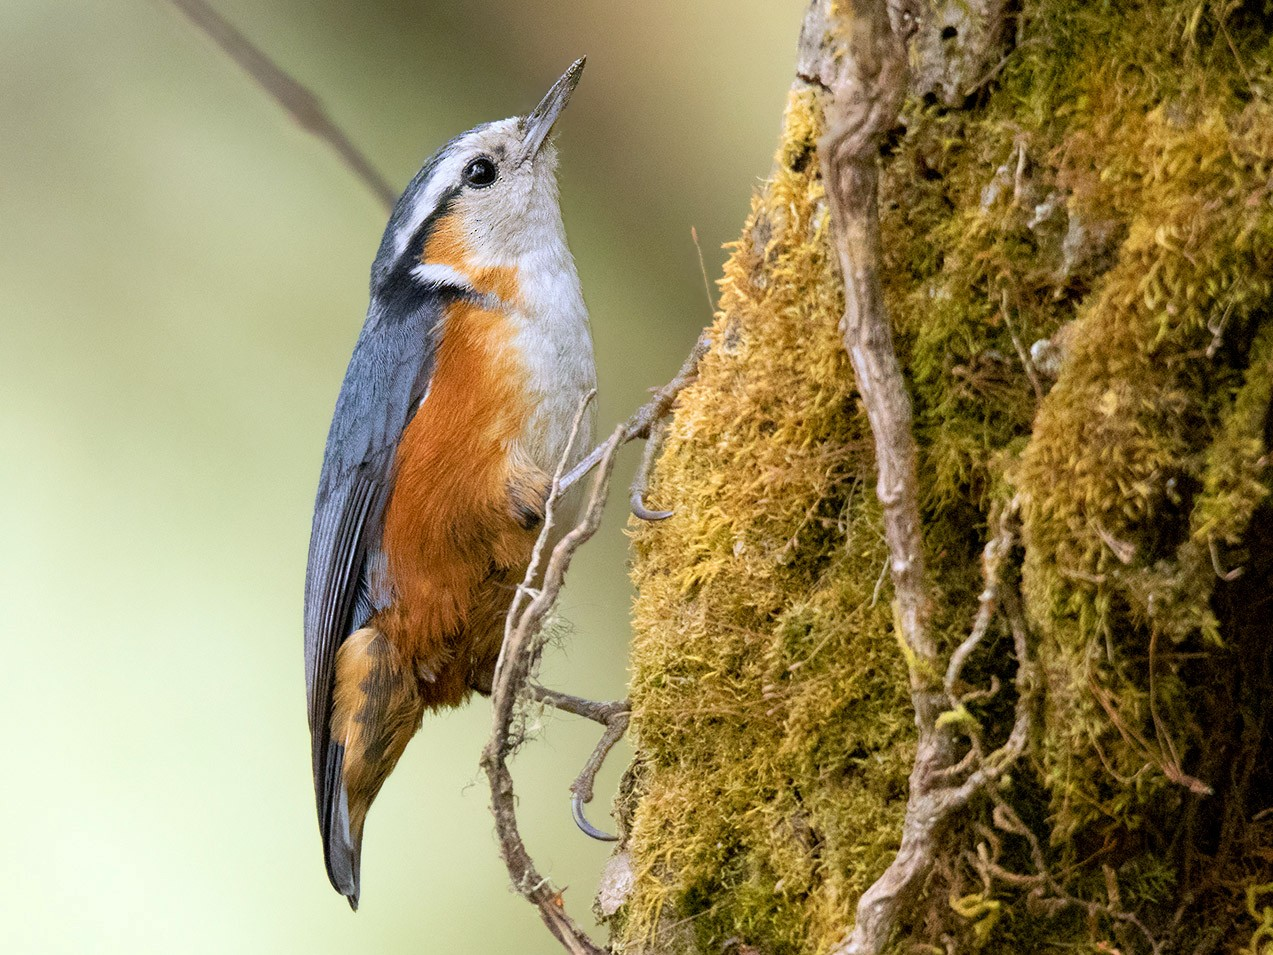 White-browed Nuthatch - Ayuwat Jearwattanakanok